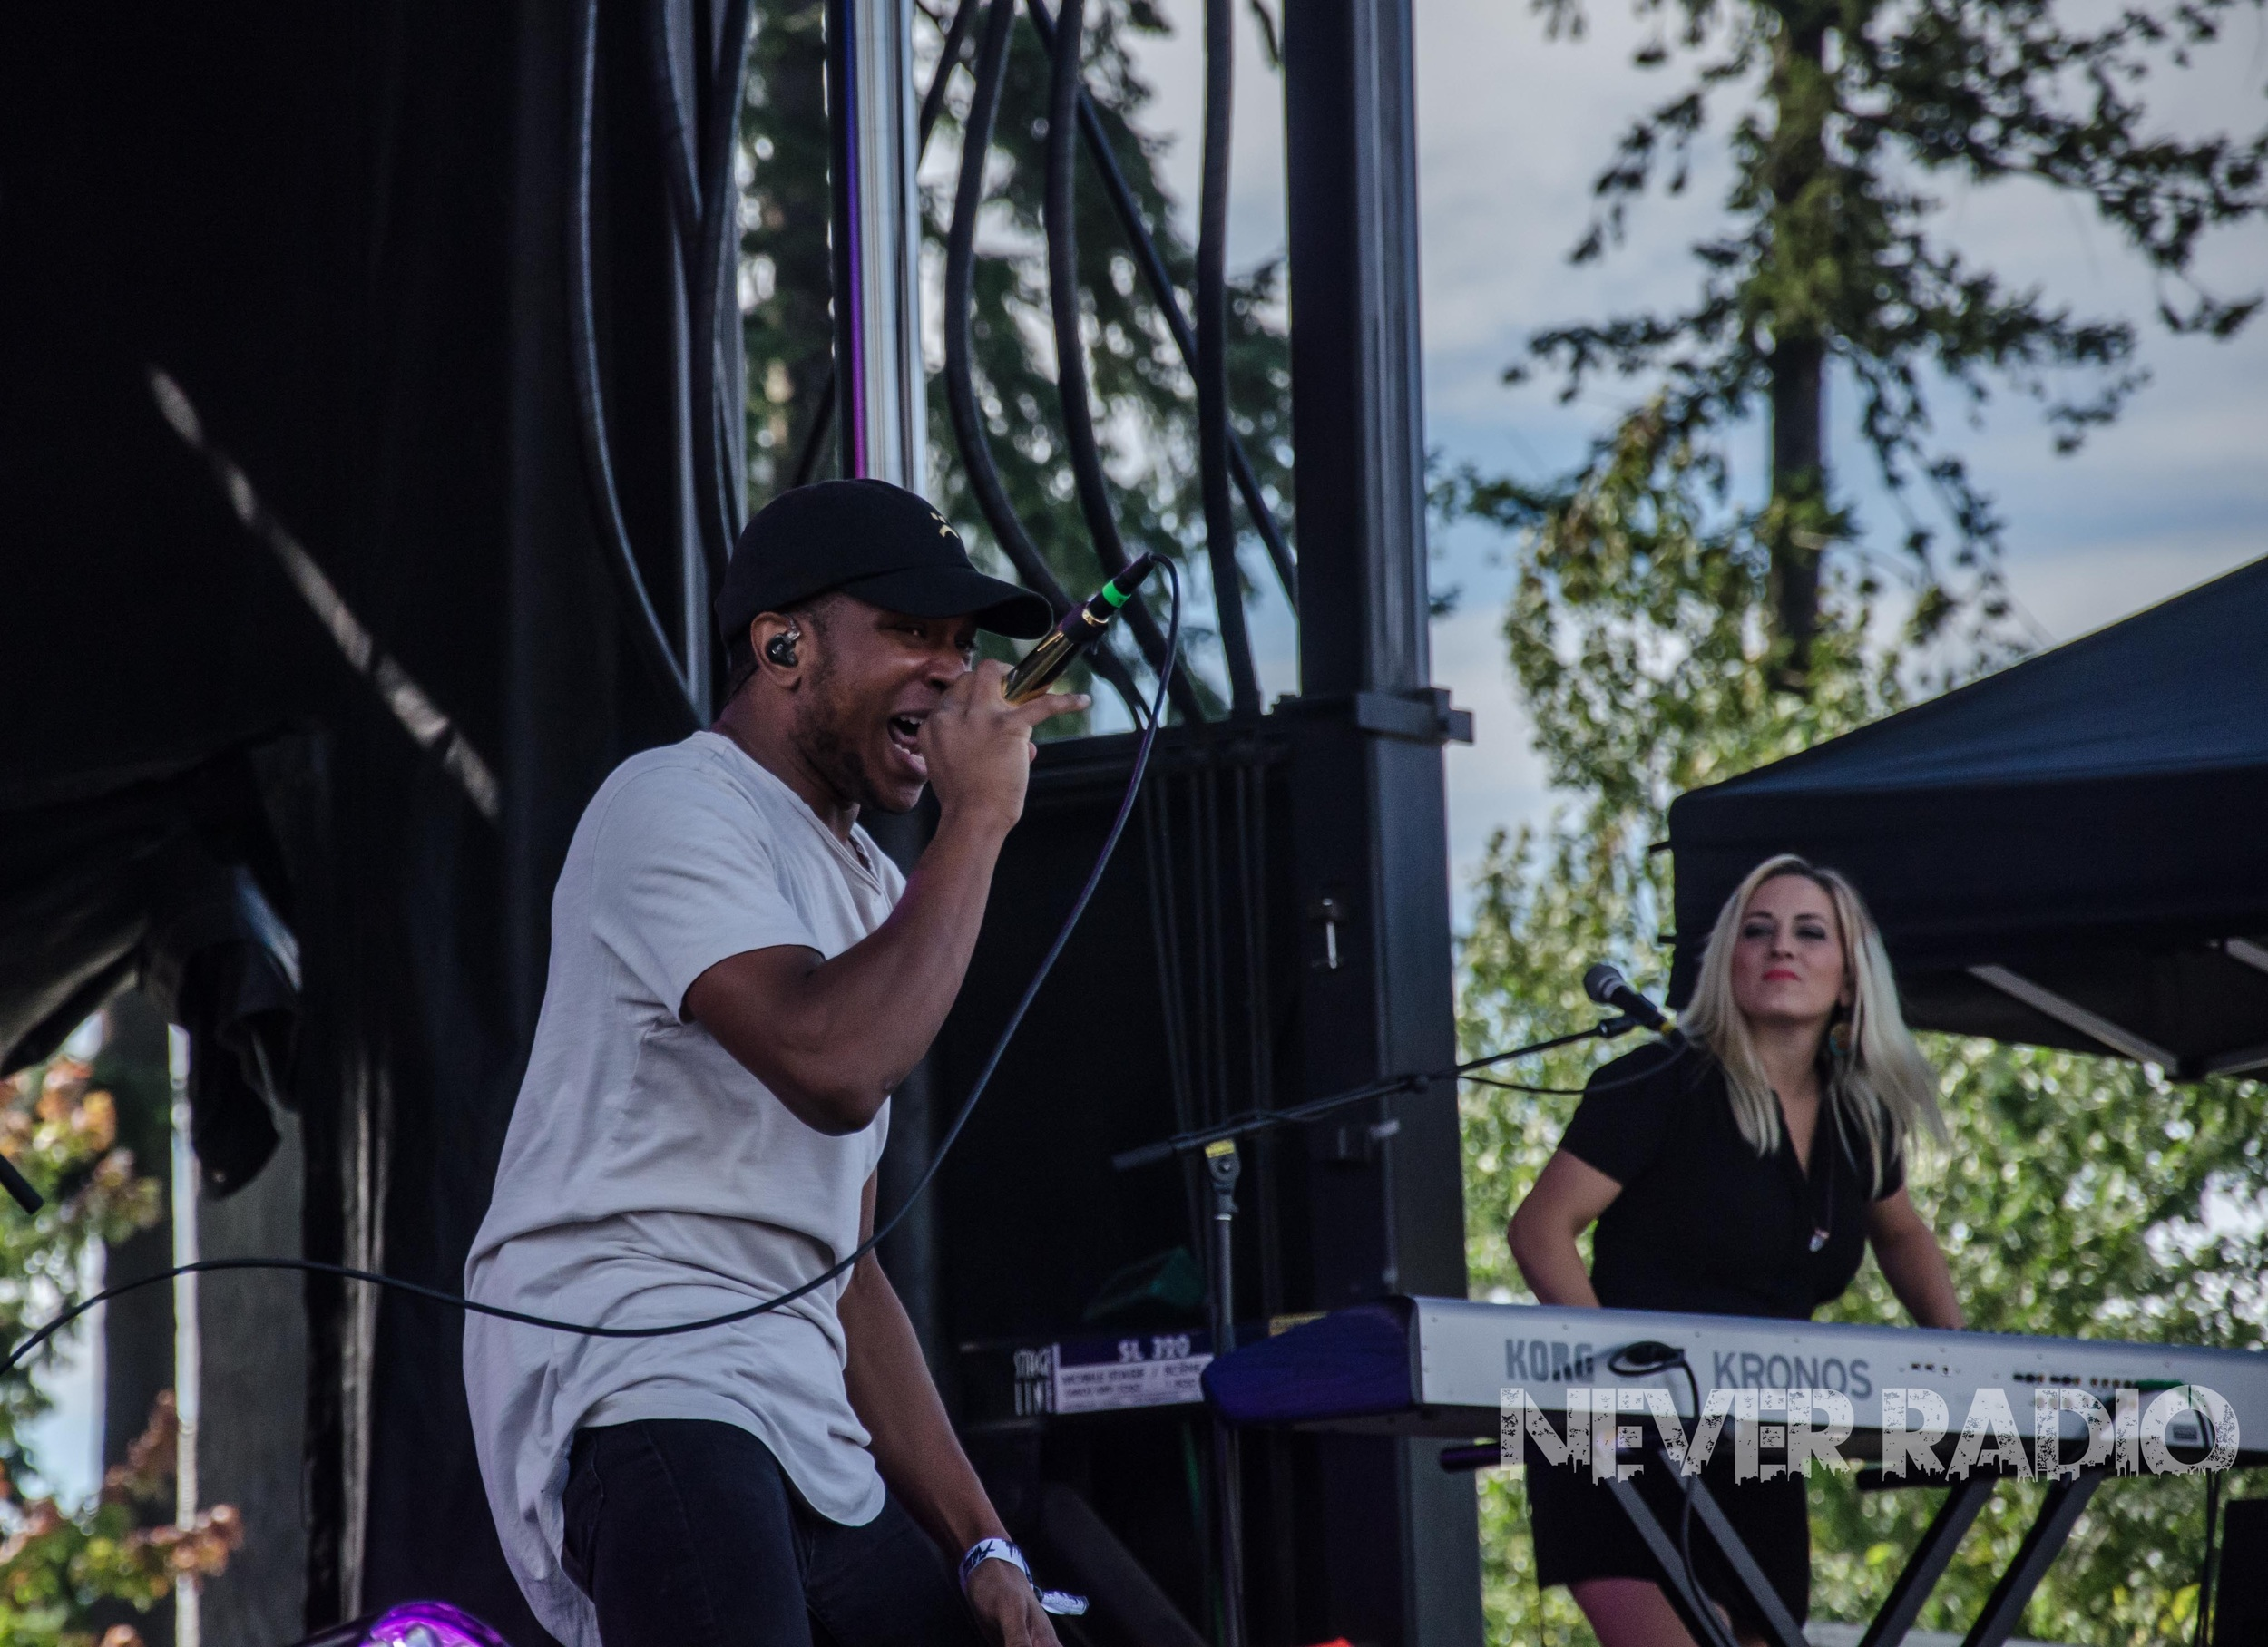 Gallant at Fvded In The Park